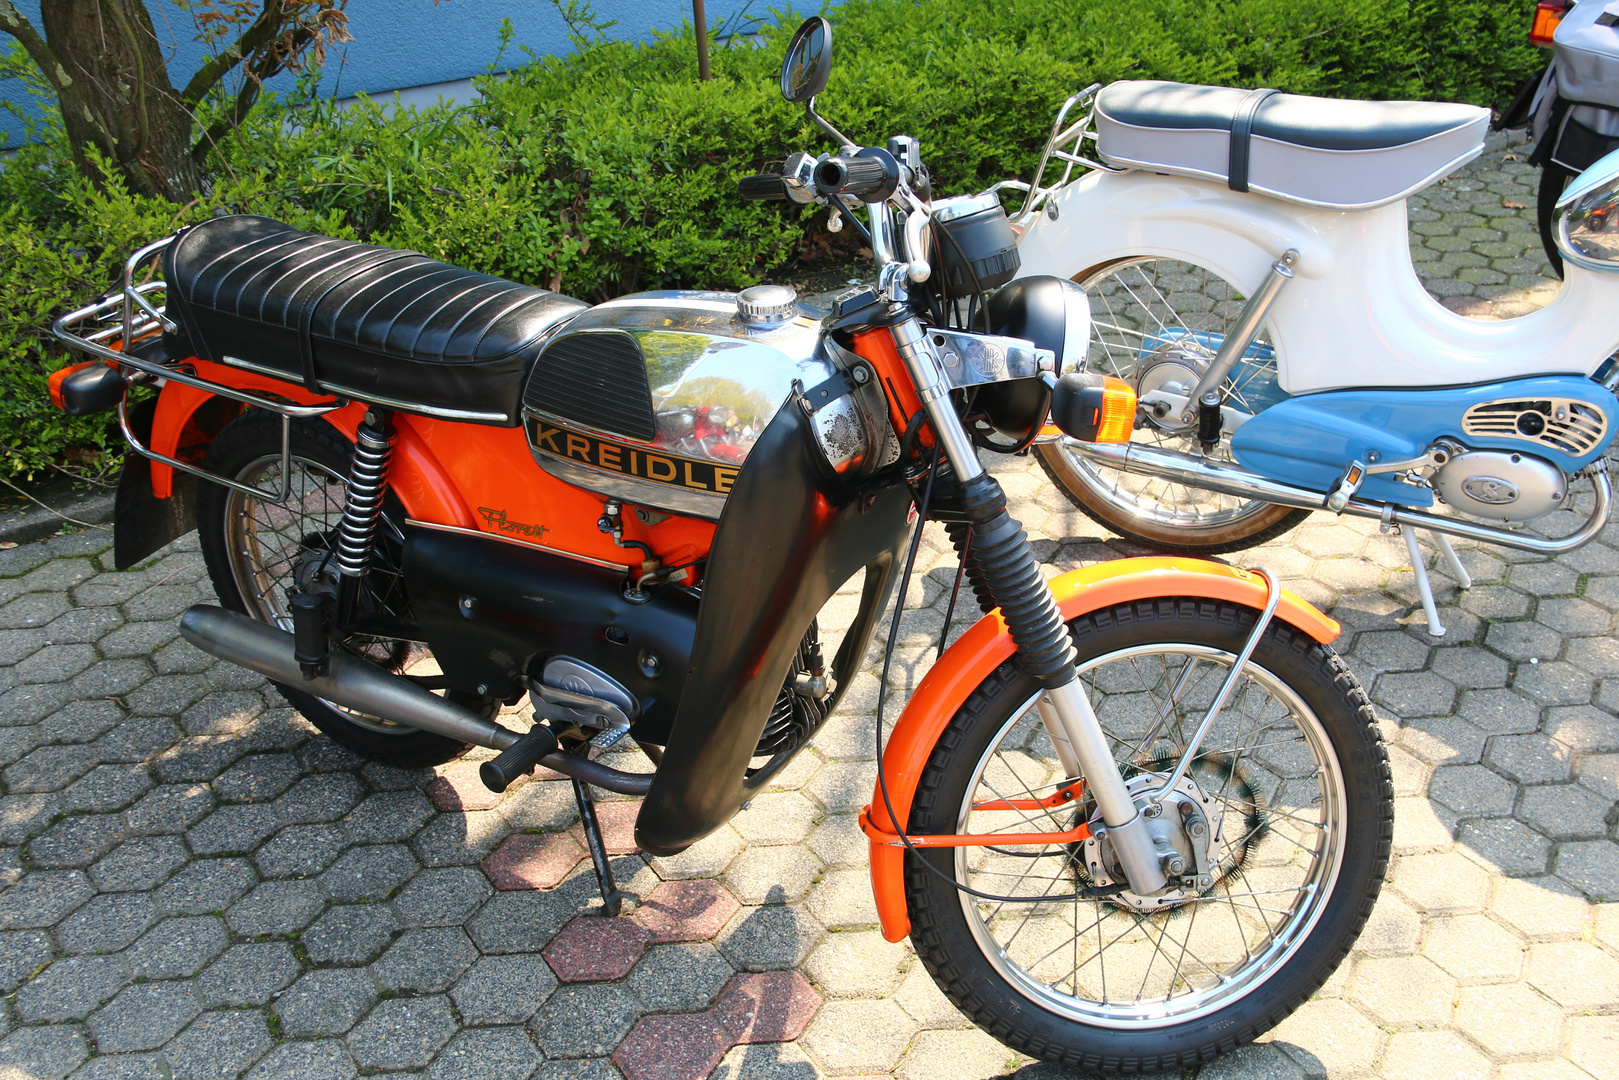 kreidler florett foto bild oldtimer moped verkehr. Black Bedroom Furniture Sets. Home Design Ideas